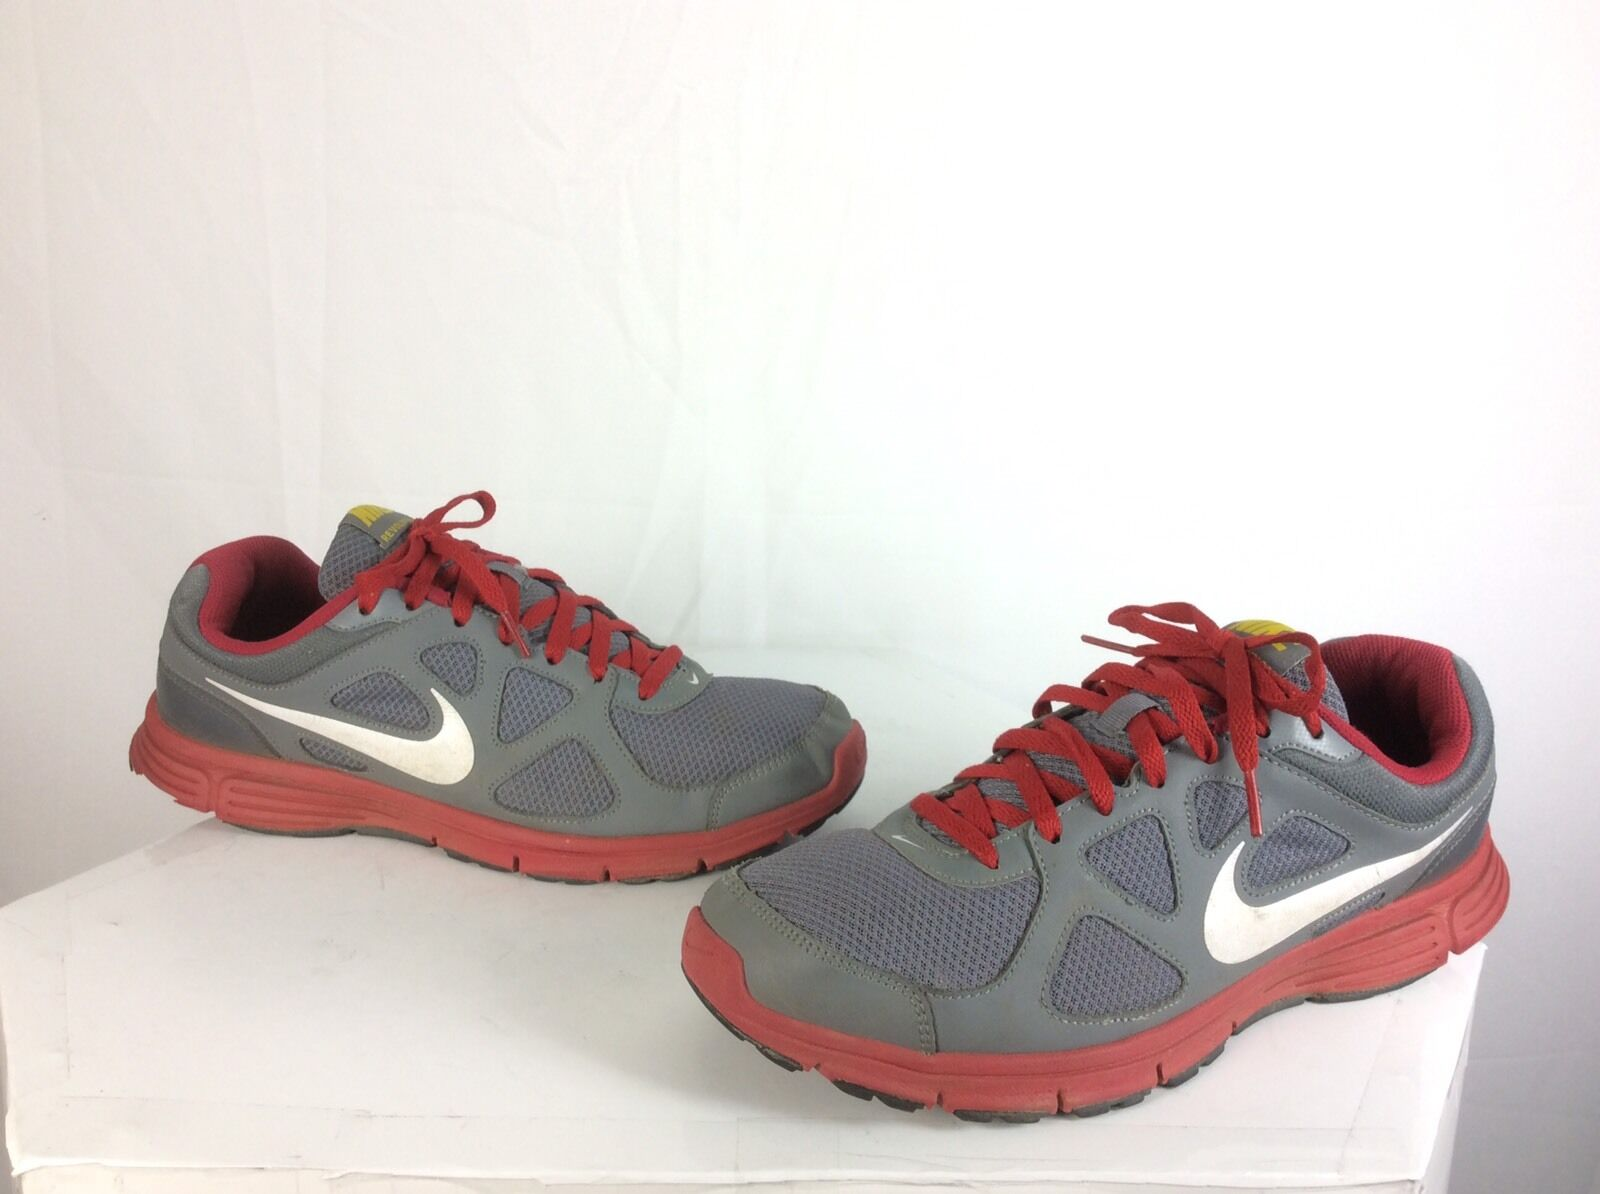 Nike Revolution Men's Gray Red Lace Athletic Sneaker Gym Running Shoes Sz 11.5 Casual wild